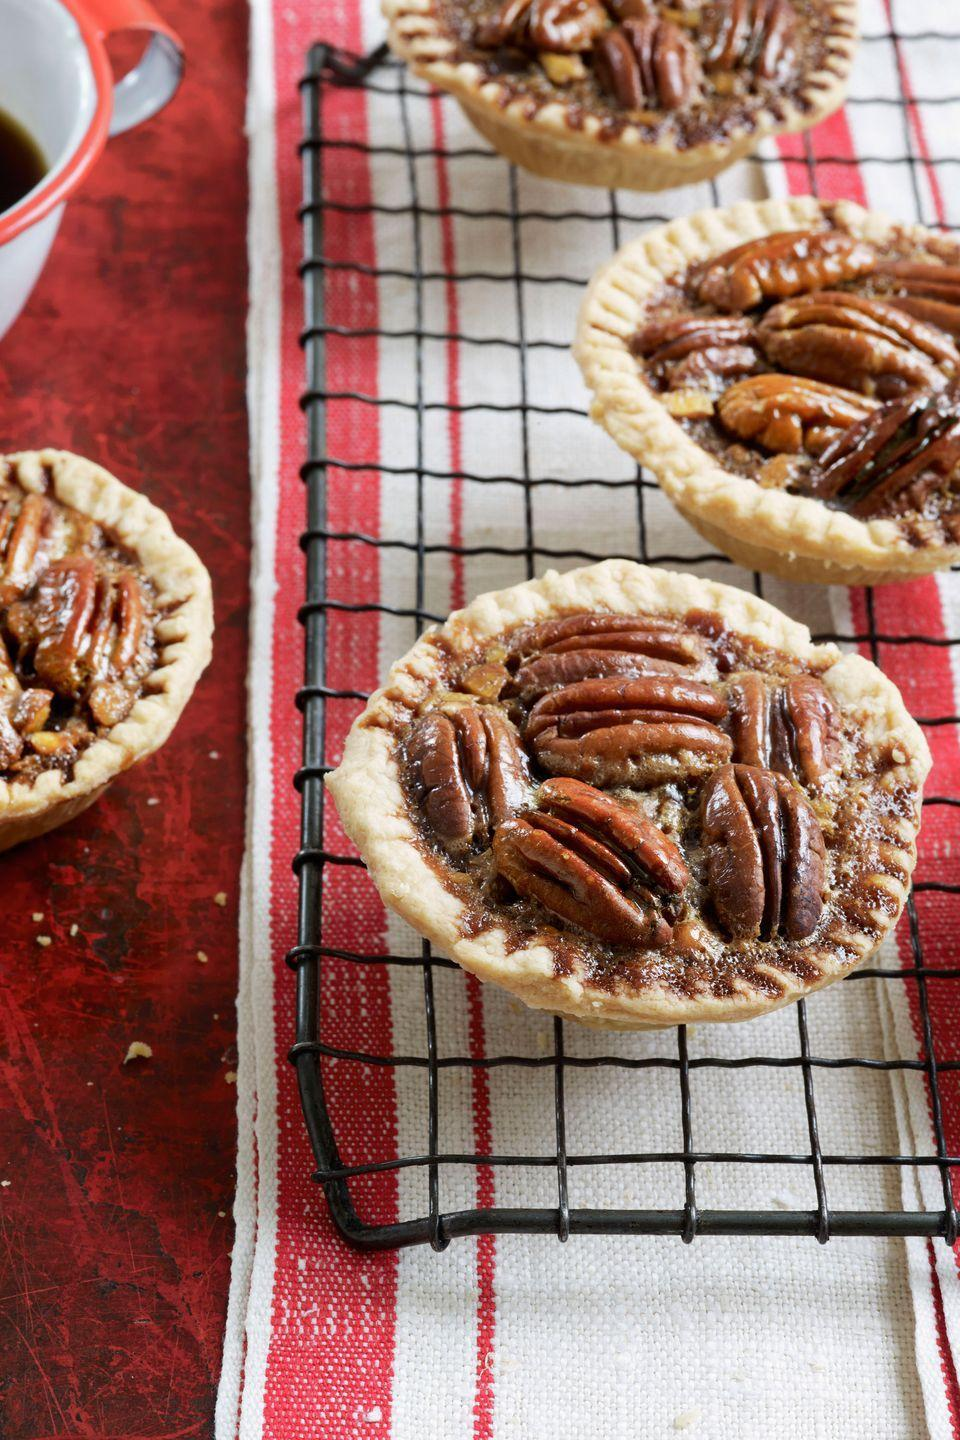 "<p>The rich taste of chocolate and the salty crunch of pecans are squeezed into tiny tarts.</p><p><a href=""https://www.countryliving.com/food-drinks/recipes/a3379/chocolate-pecan-tartlets-recipe-clv0510/"" rel=""nofollow noopener"" target=""_blank"" data-ylk=""slk:Get the recipe."" class=""link rapid-noclick-resp""><strong>Get the recipe.</strong></a></p>"